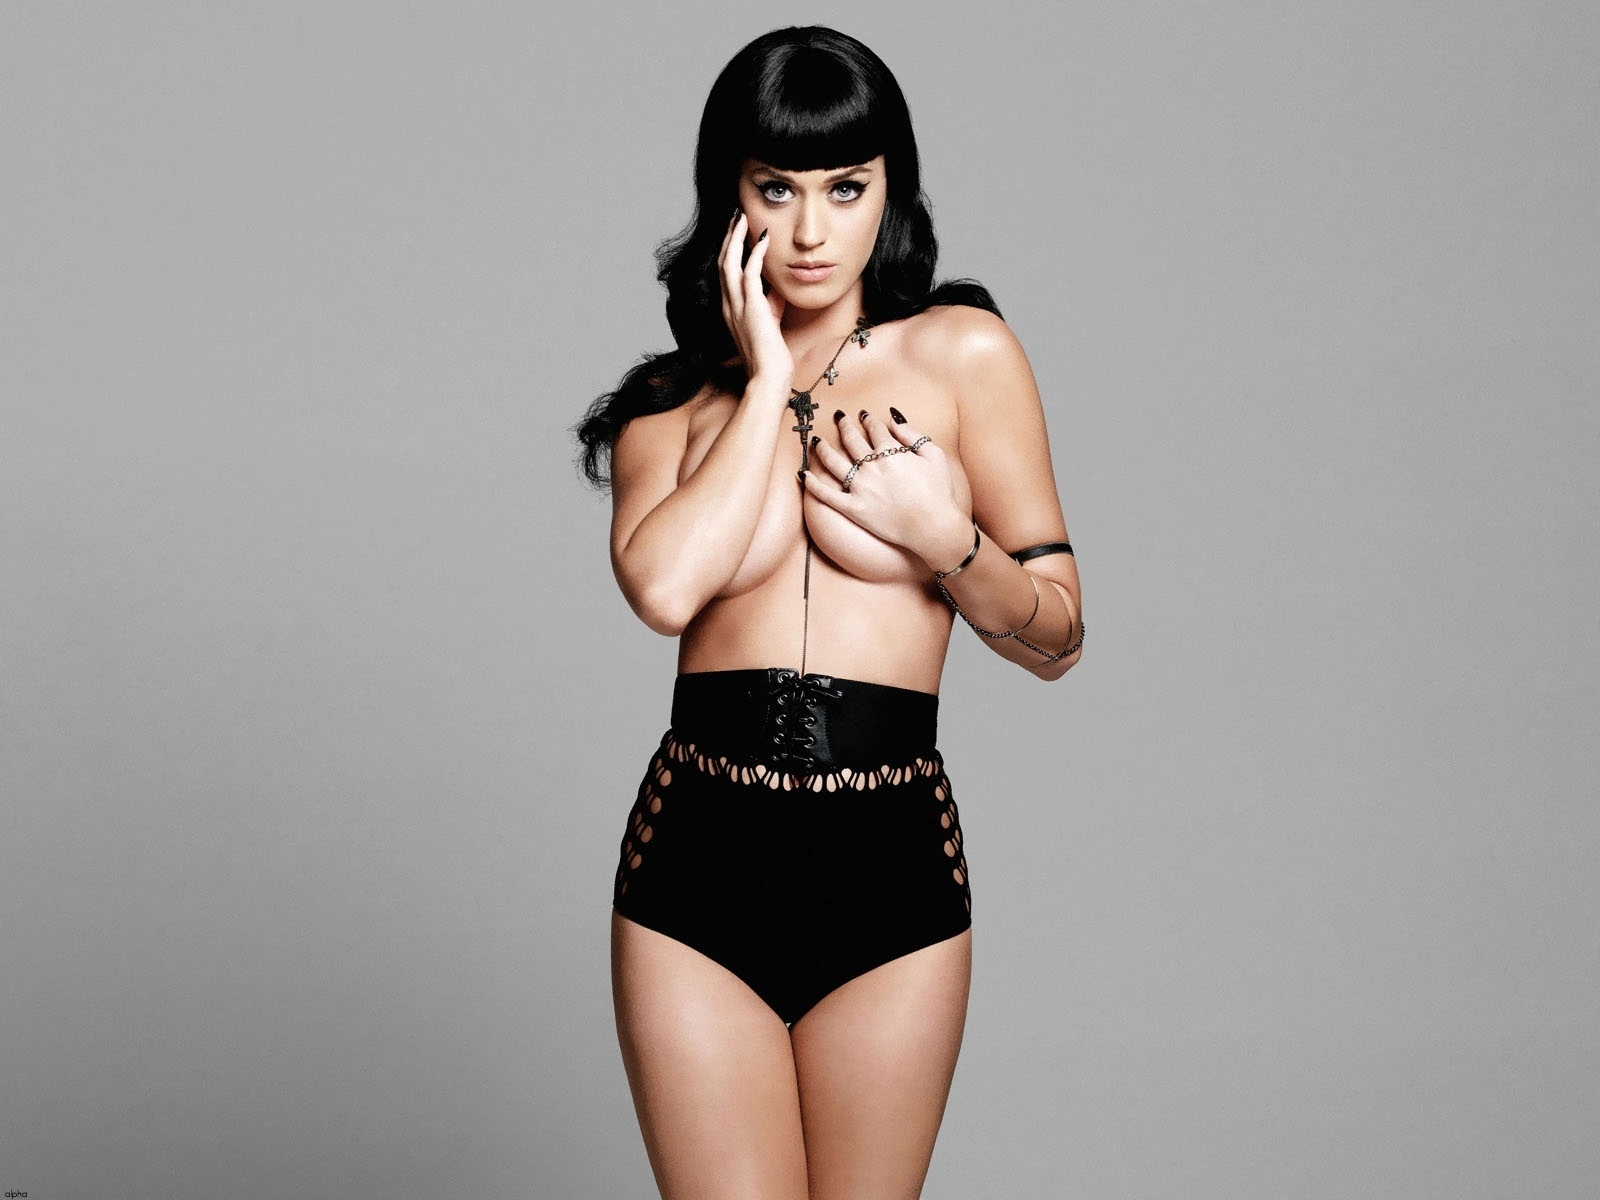 Katy Perry wears black underwear or lingerie and no top